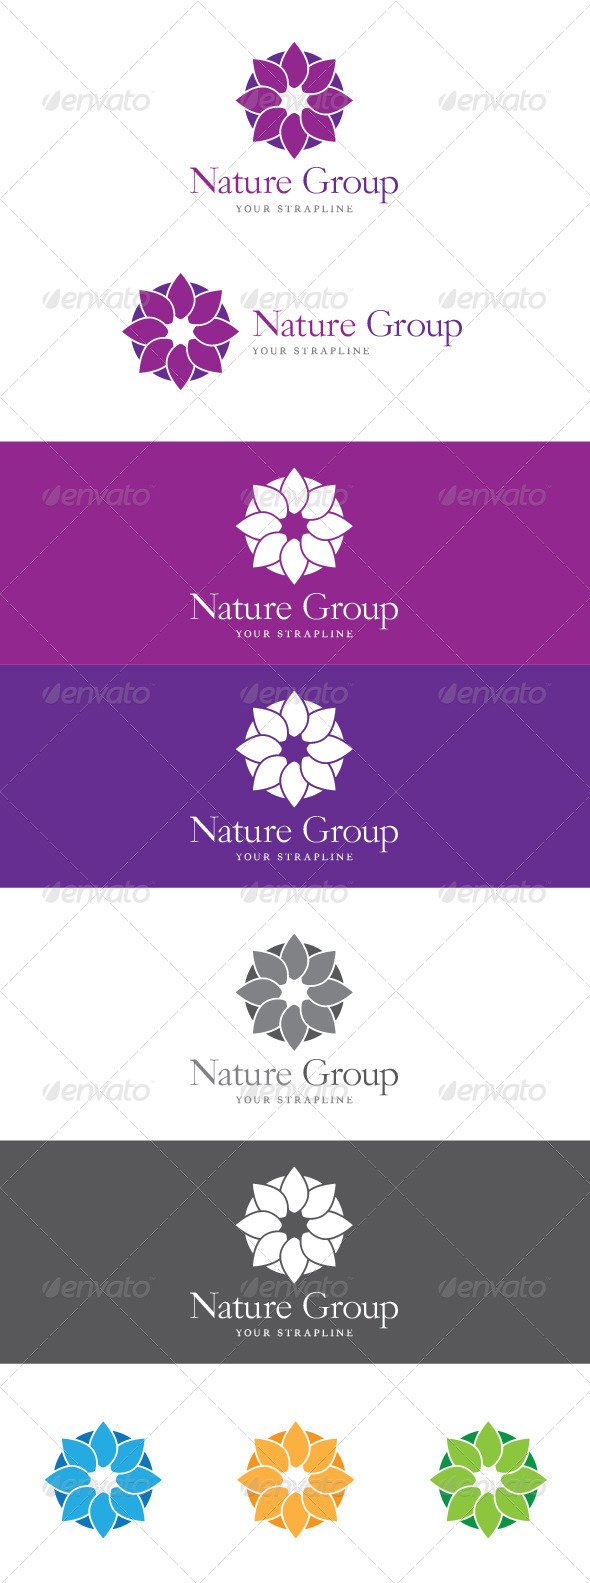 GraphicRiver Nature Group Logo 8434334